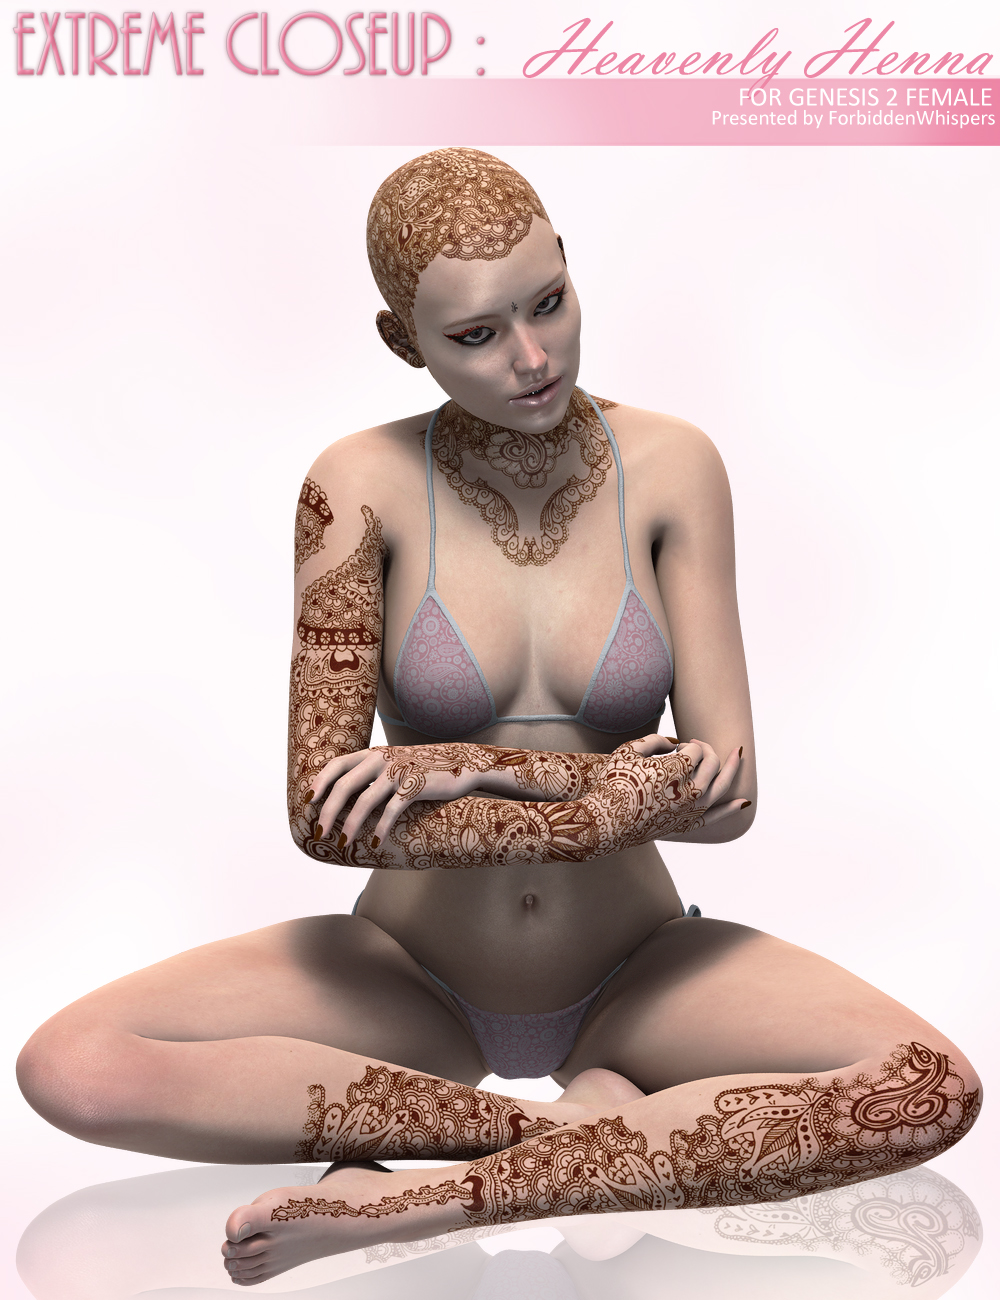 Extreme Closeup: Heavenly Henna for Genesis 2 Female(s) by: ForbiddenWhispers, 3D Models by Daz 3D